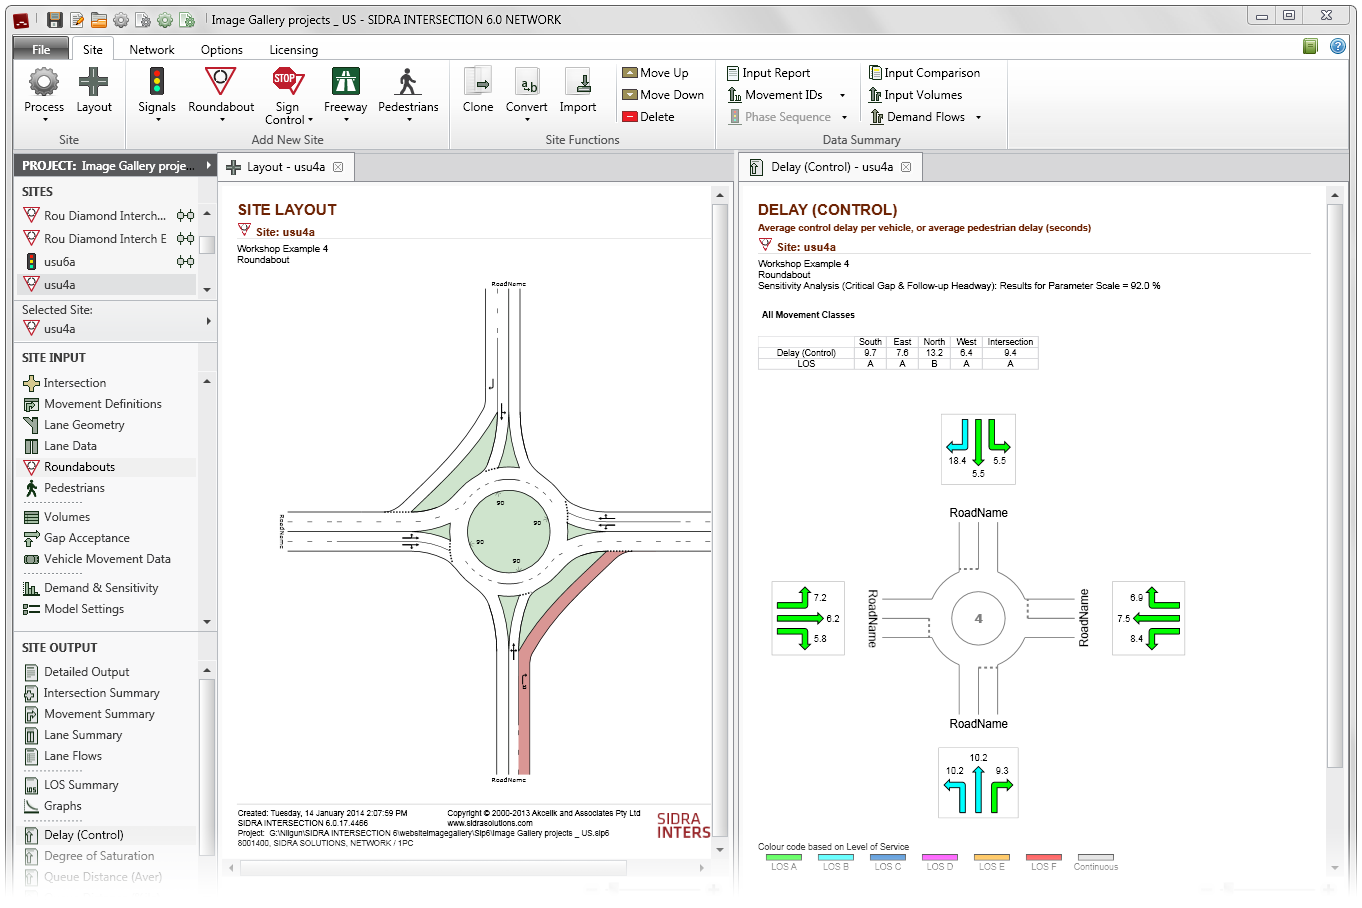 SIDRA INTERSECTION - us-SiteLayout-DelayControl